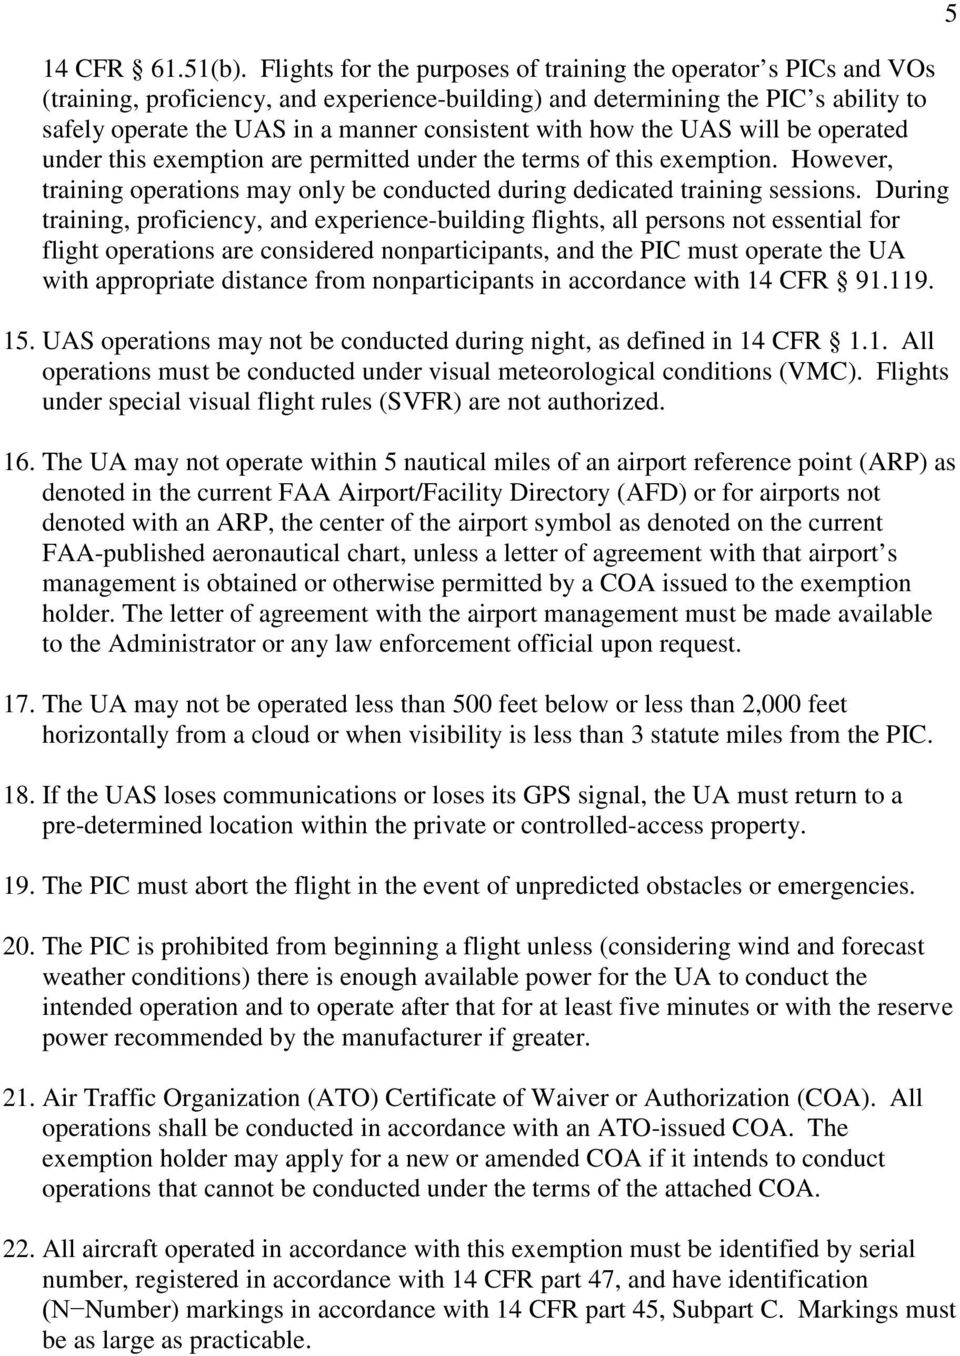 with how the UAS will be operated under this exemption are permitted under the terms of this exemption. However, training operations may only be conducted during dedicated training sessions.